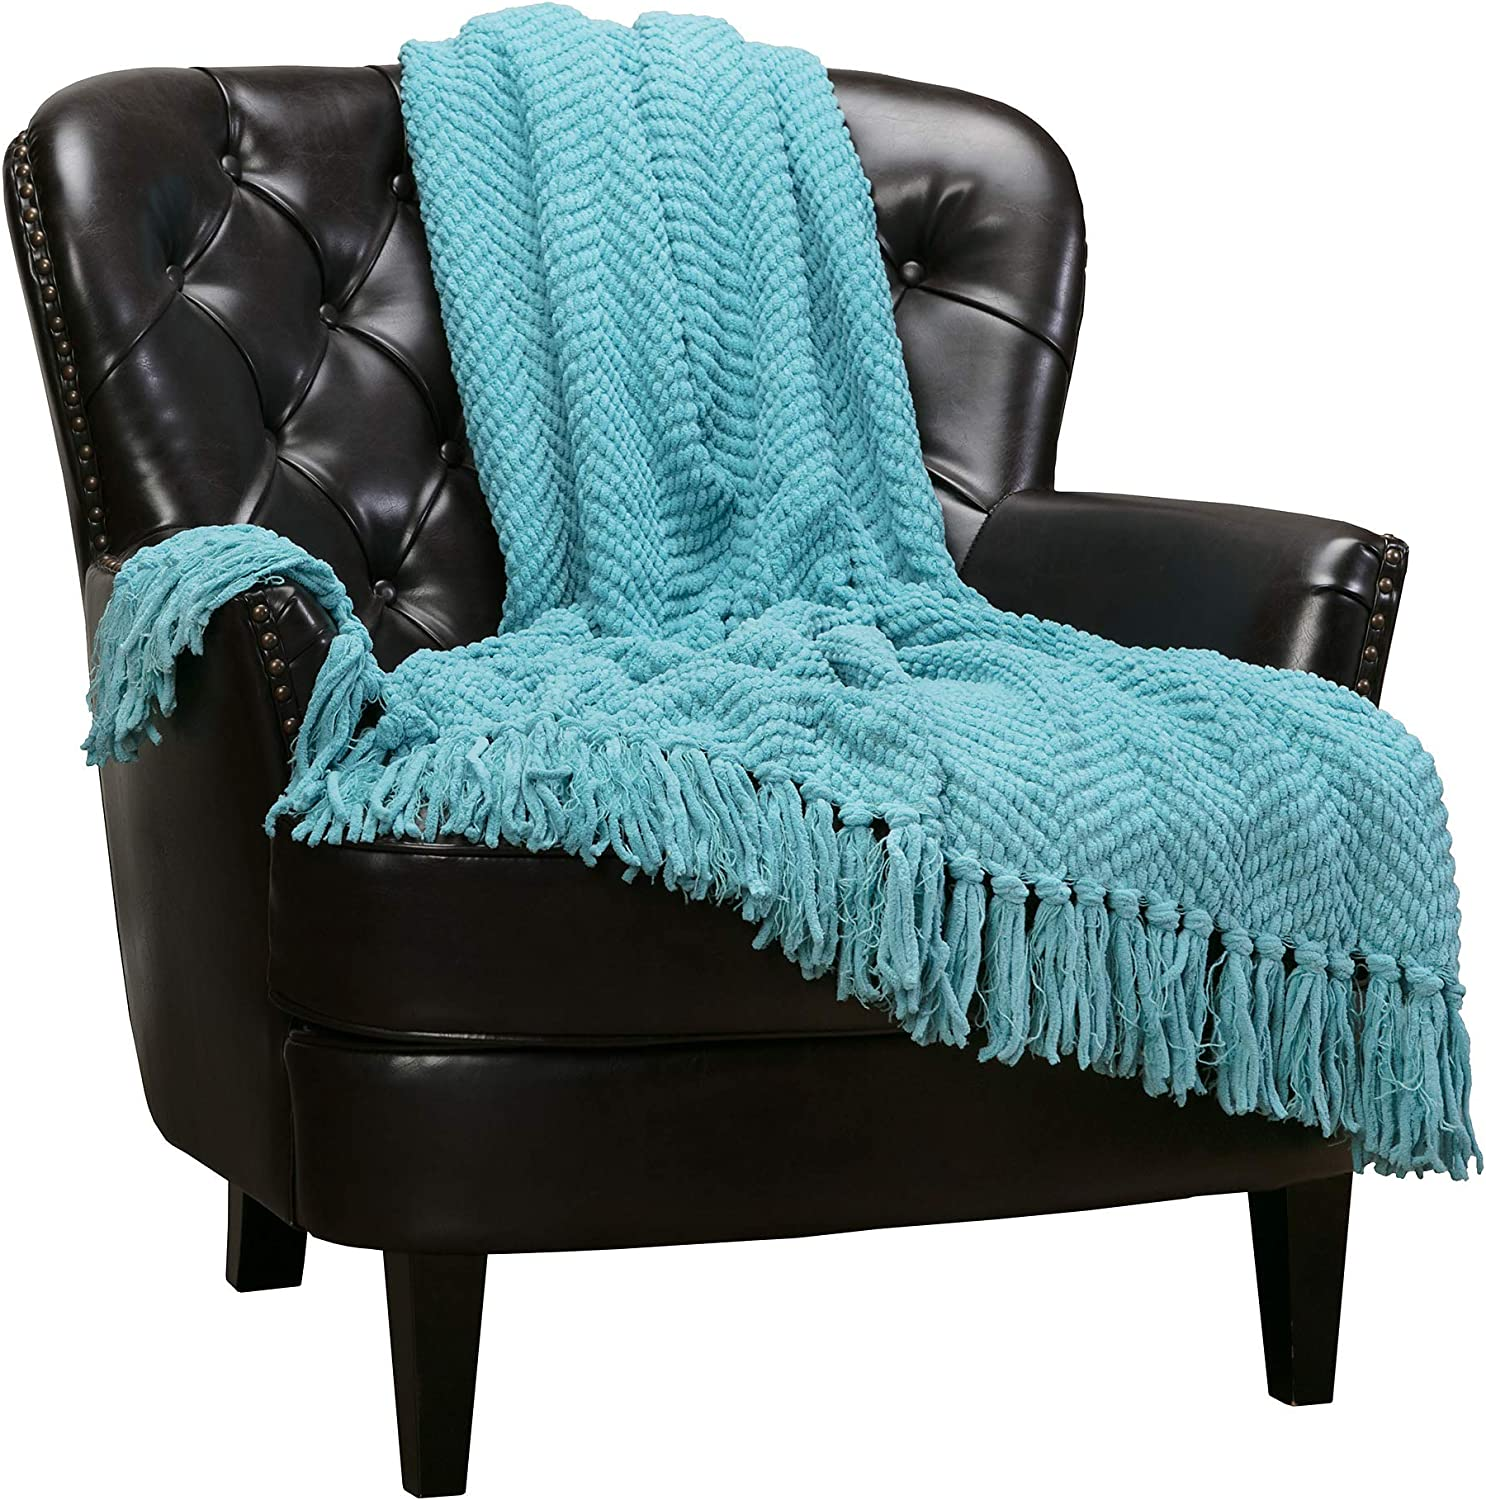 Chanasya Textured Knitted Super Soft Throw Blanket with Tassels Cozy Plush Lightweight Fluffy Woven Blanket for Bed Sofa Couch Cover Living Bed Room Acrylic Blue Throw Blanket (50x65 Inches) Aqua